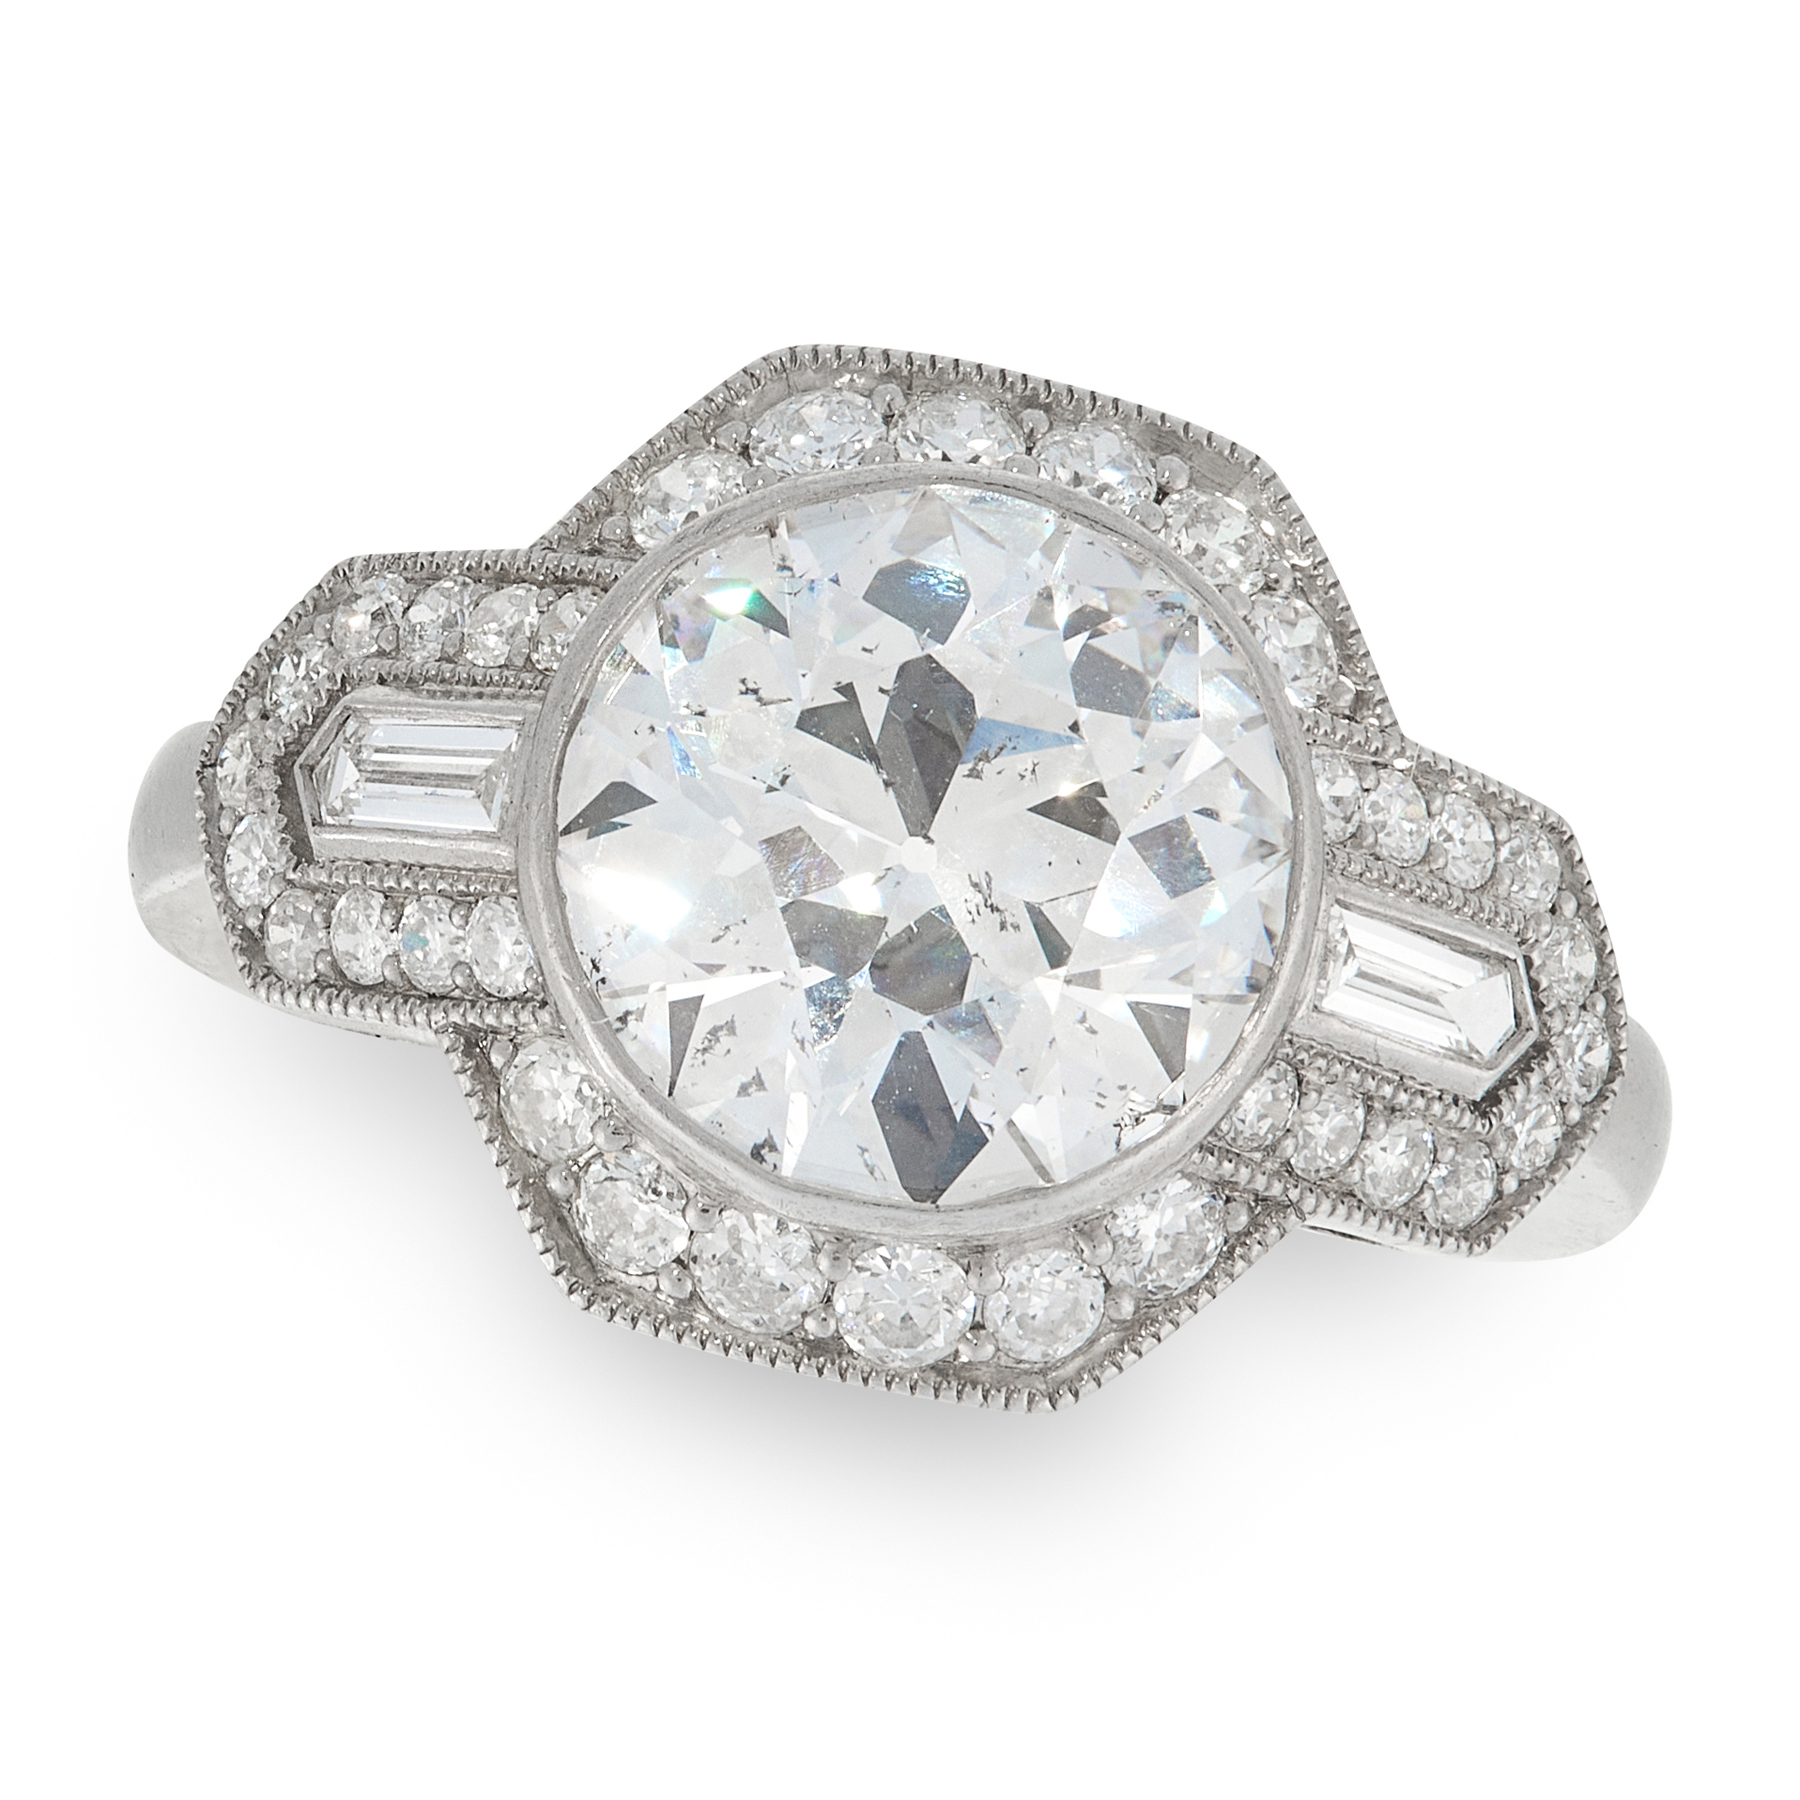 A DIAMOND DRESS RING in platinum, set with a principal round cut diamond of 3.01 carats flanked by